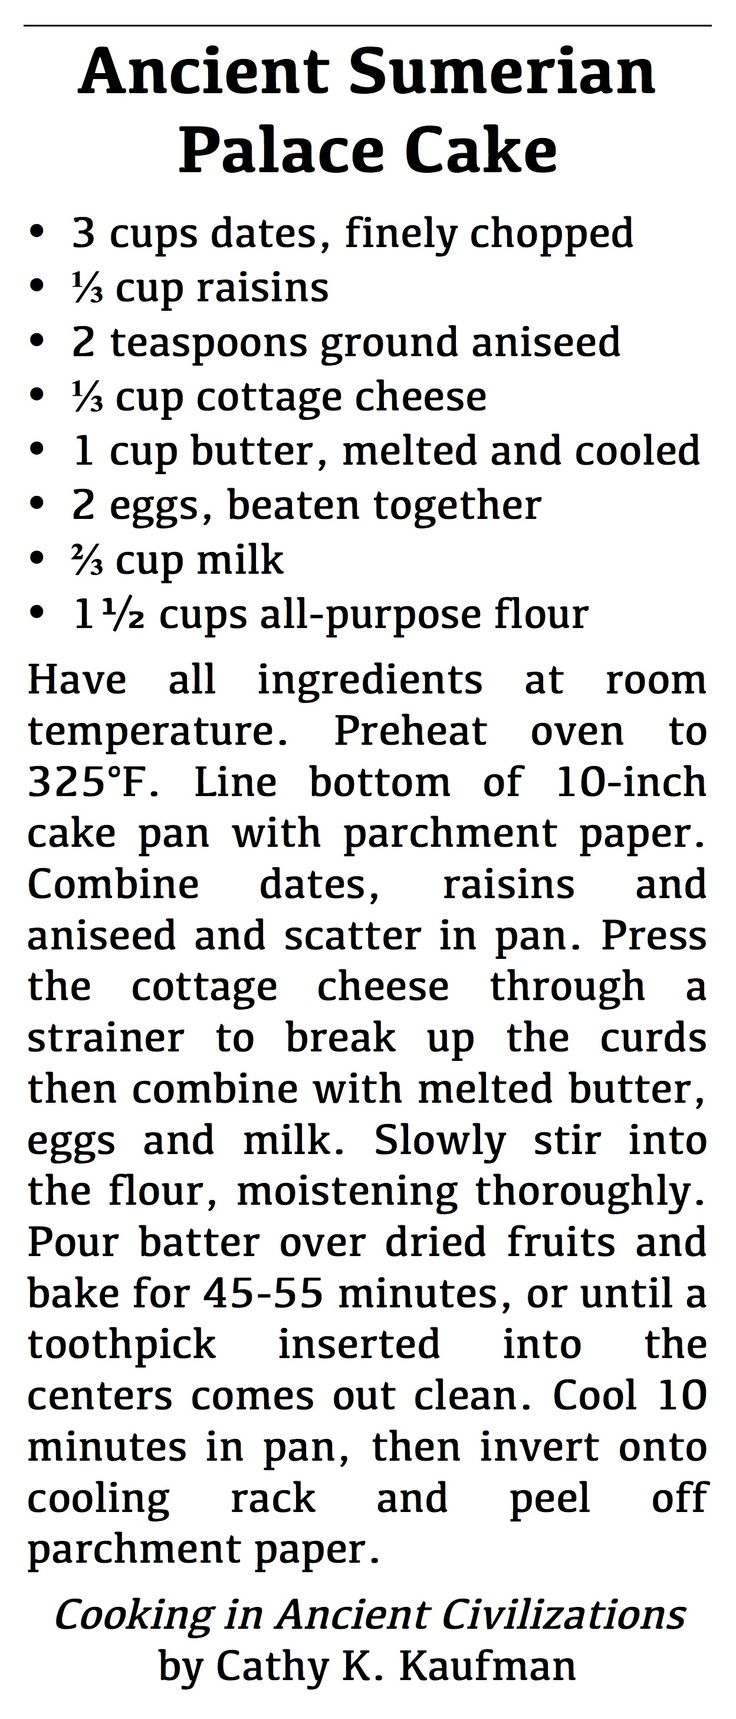 Ancient Sumerian Palace Cake | Records from Ur identify cakes for the palace as containing 1 sila of butter, 1/3 sila of white cheese, 3 sila of first-quality dates, and 1/3 sila of raisins. A sila is about 3 cups. This recipe has been scaled back to make the quantities more manageable, but it is extremely rich. Presumably a competent baker would infer the flour and other ingredients that. To be more authentic, line the bottom of the pan with grape leaves instead of parchment paper.